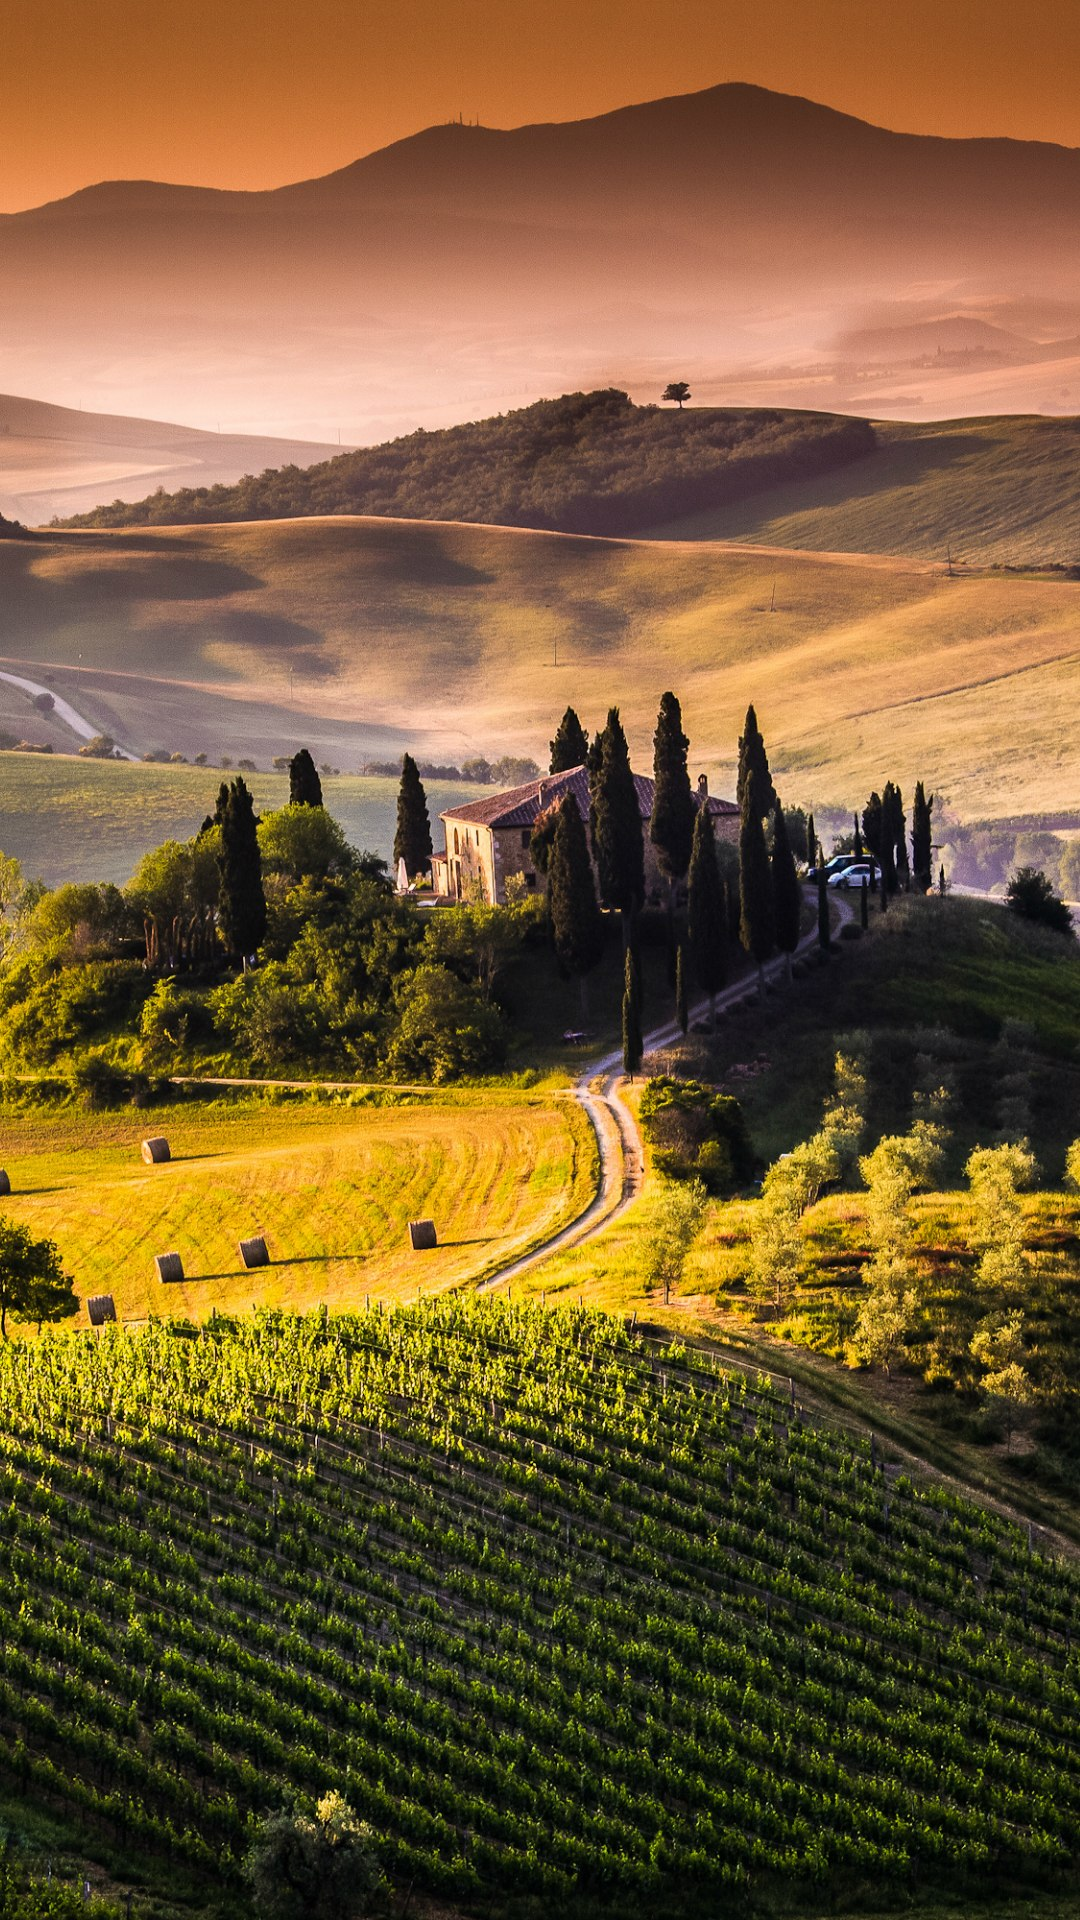 Great Wallpaper Mobile Landscape - tuscany-landscape-hd-1080x1920  Snapshot_424016.jpg